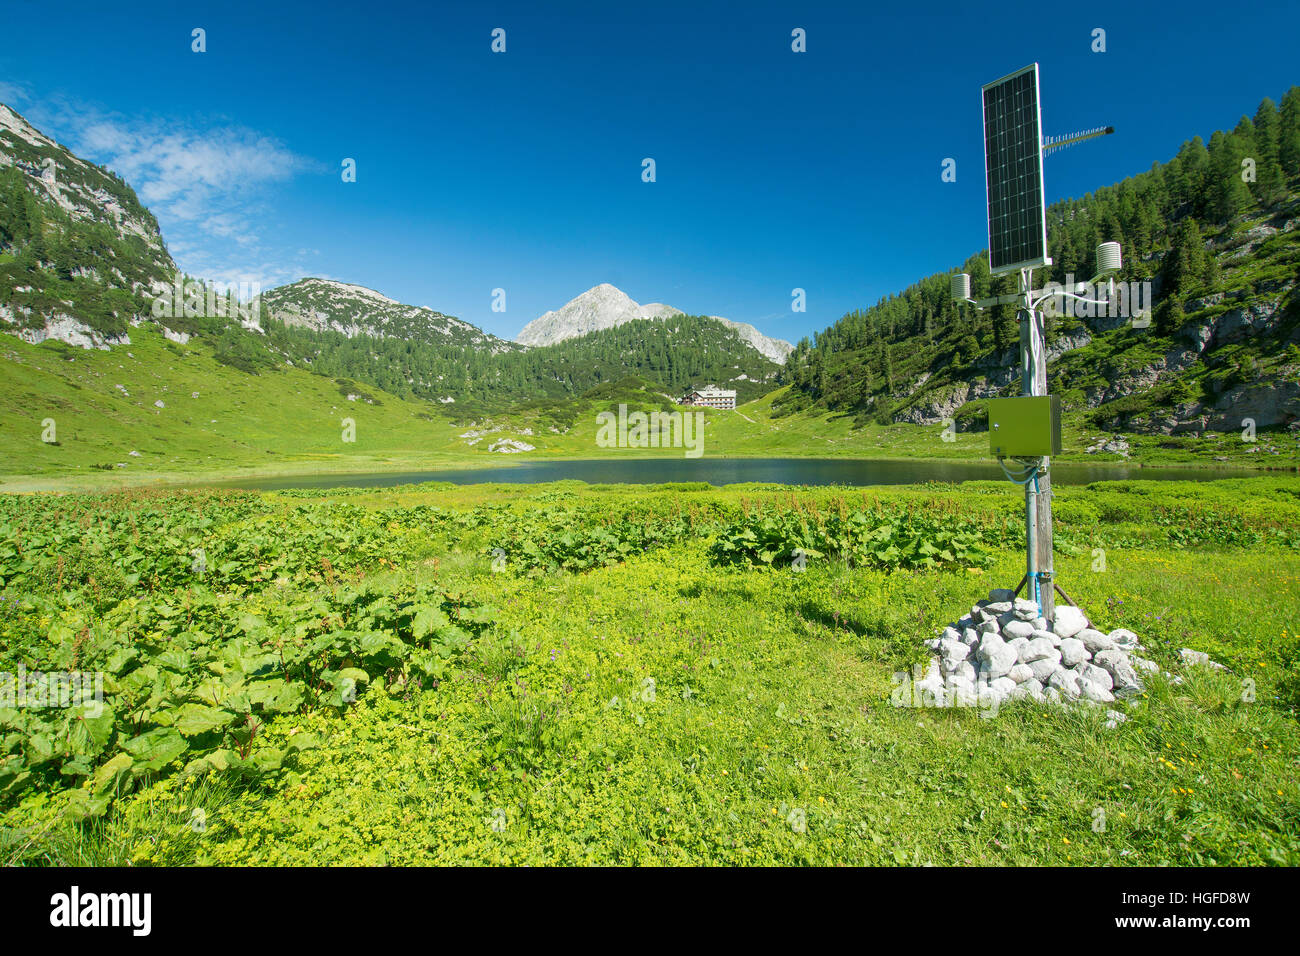 abc2e2c477 Measuring station of the German weather service on he Funtensee lake -  Stock Image